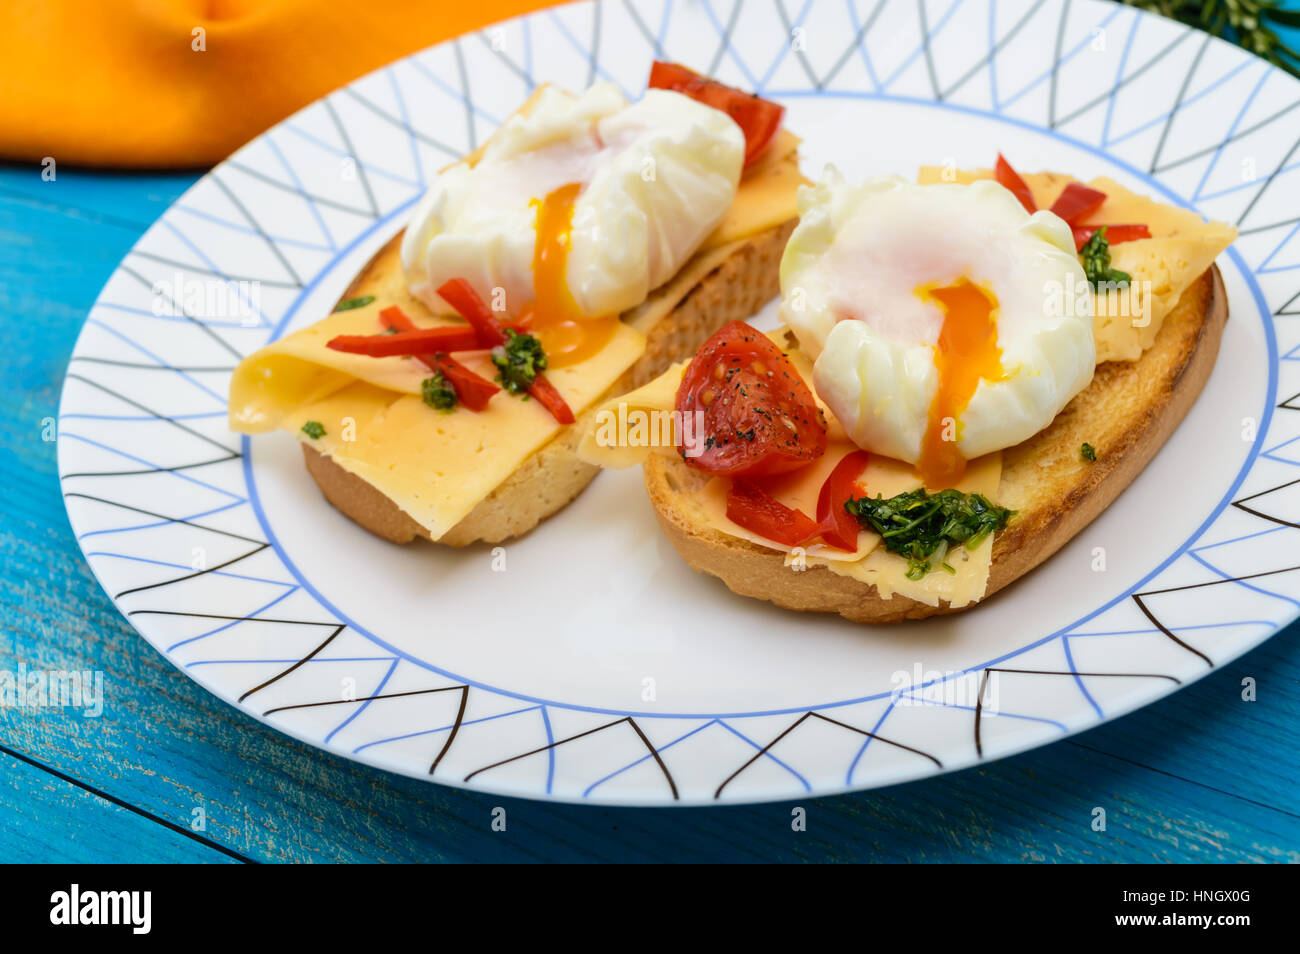 Crispy toast with poached egg, cheese, peppers, tomatoes, souse on a plate on a blue background. Close up - Stock Image